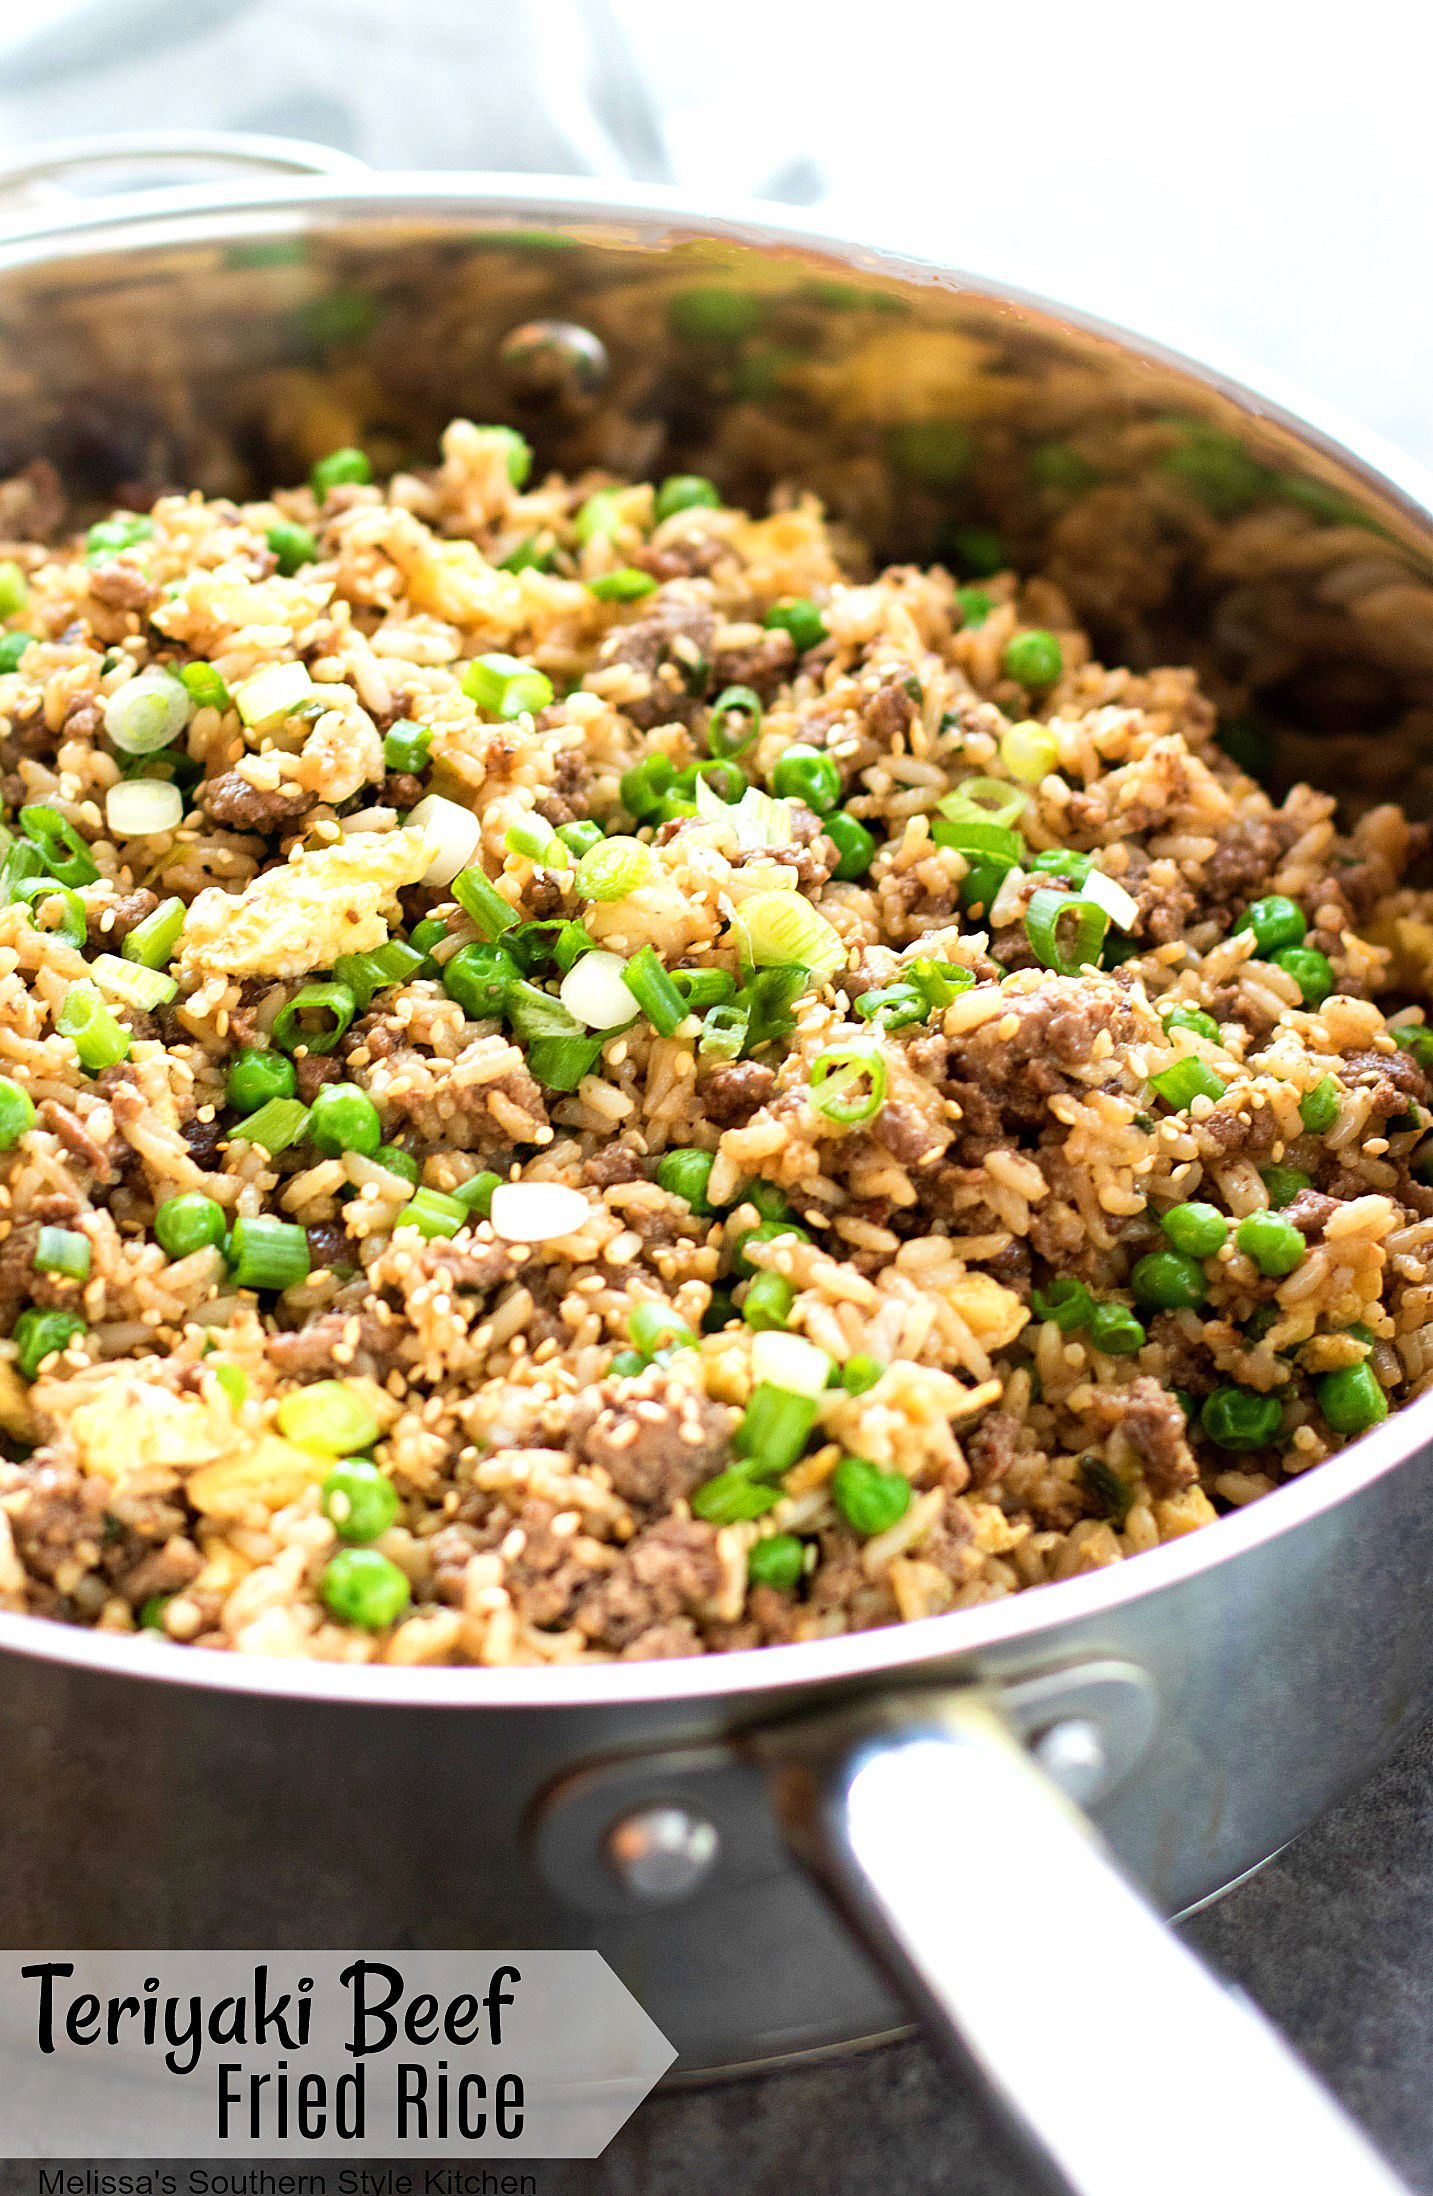 This Super Simple And Tasty Teriyaki Beef Fried Rice Is A Skillet Meal In The Making Lean Ground B Quick Ground Beef Recipes Beef Fried Rice Beef Recipes Easy